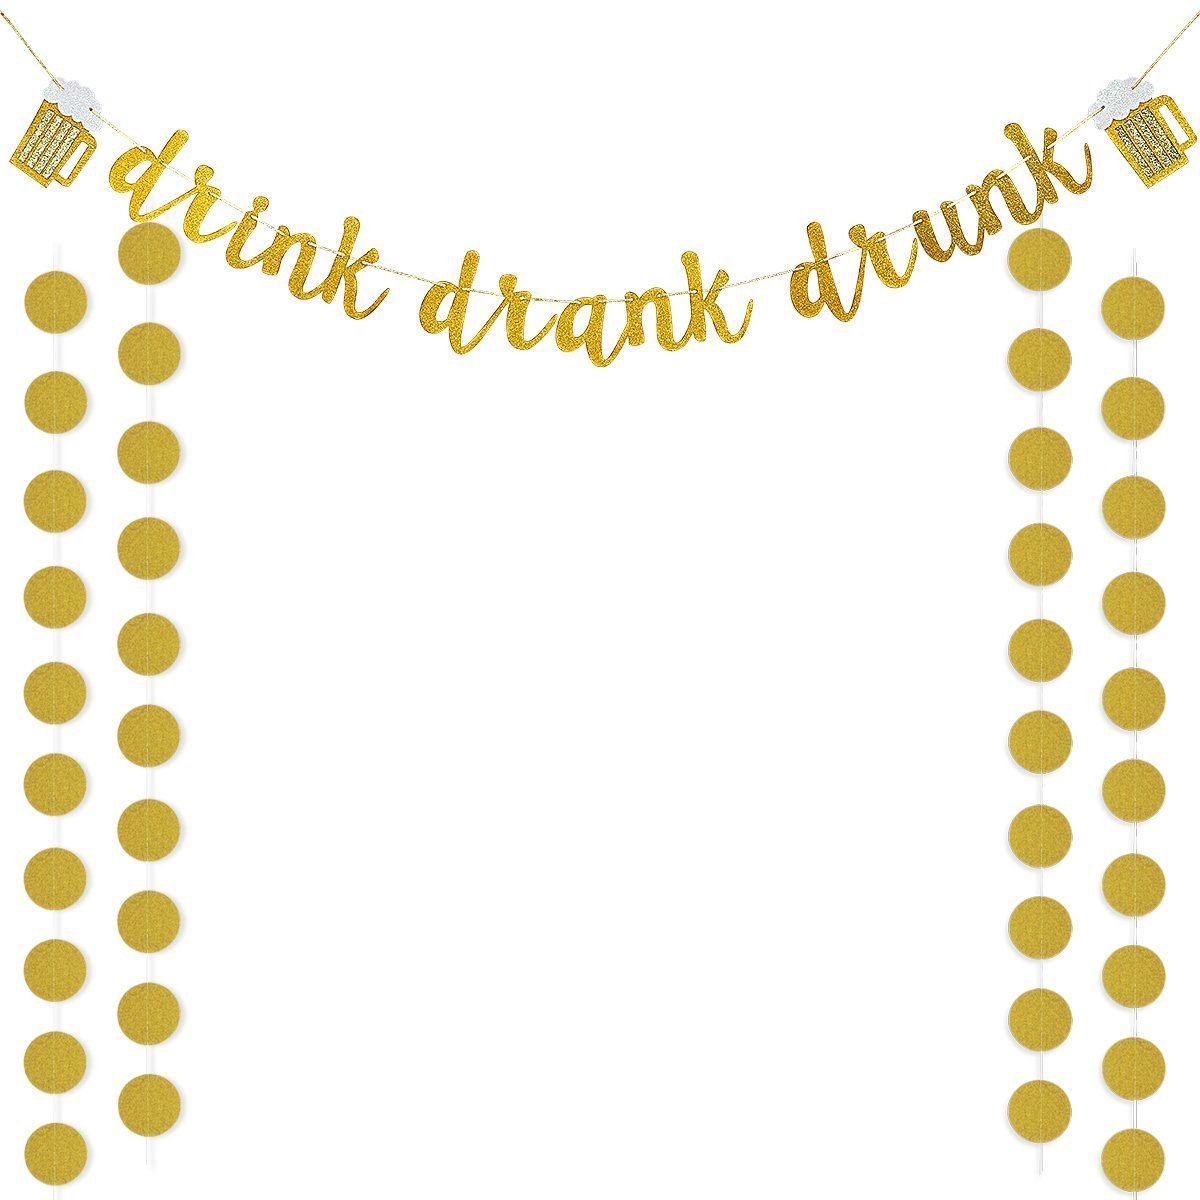 Gold Glittery Drink Drank Drunk Banner and Gold Glittery Circle Dots Garland(25pcs Circle Dots),for Bar Sign,Bachelorette,Wedding,Birthday Party Decoration by LeeSky